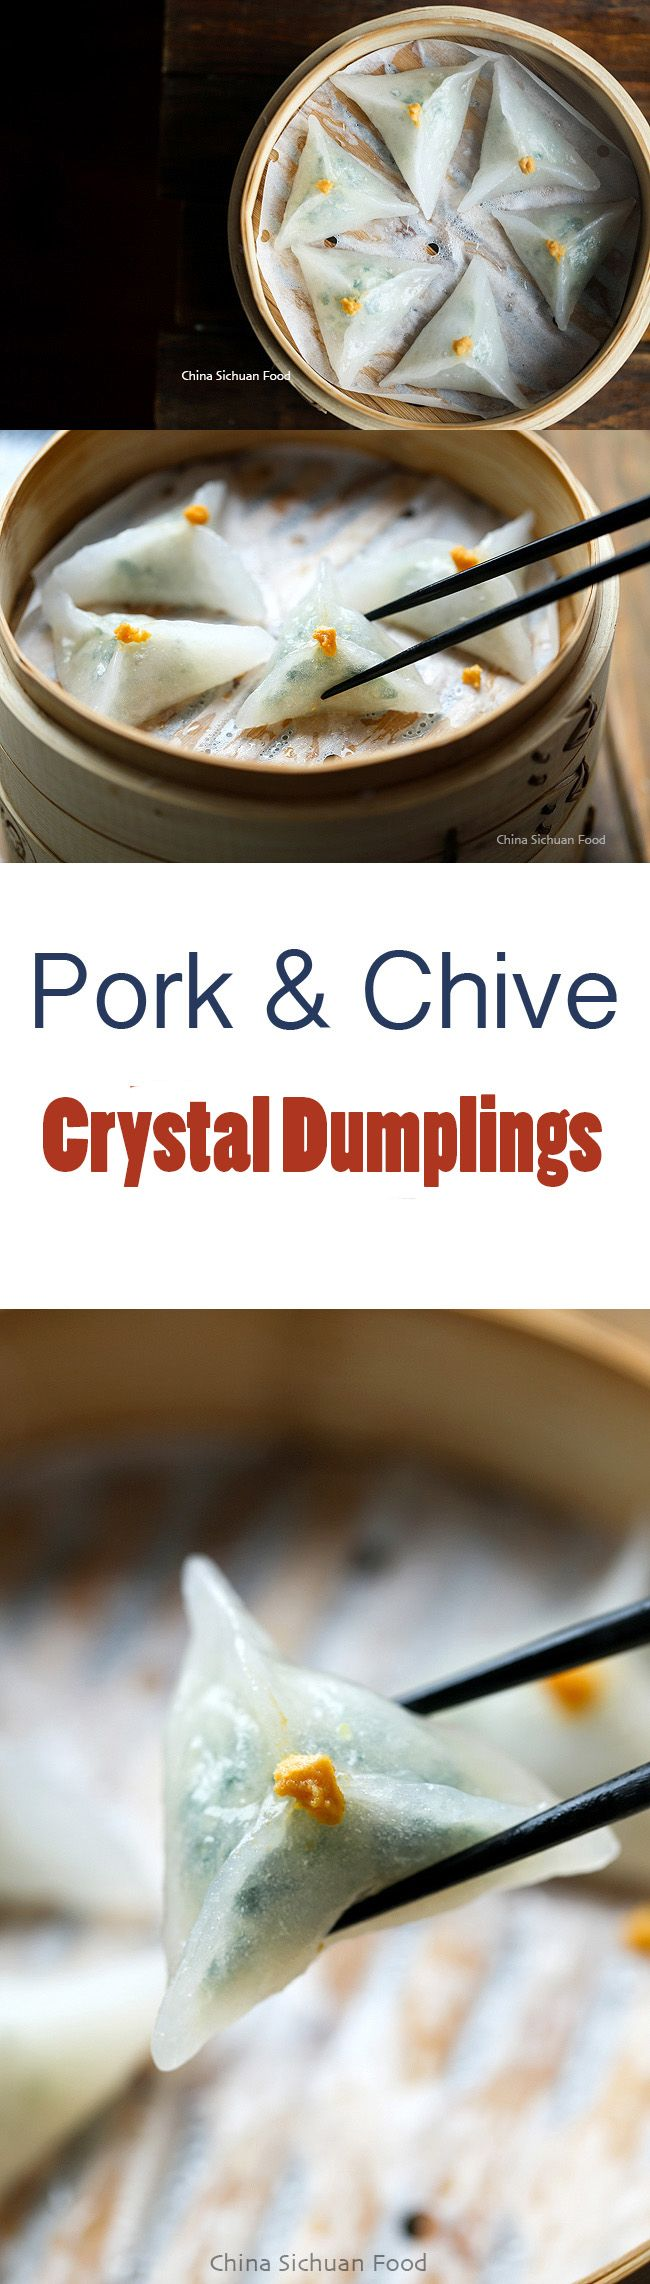 Pork and Chive Crystal Dumplings | ChinaSichuanFood.com